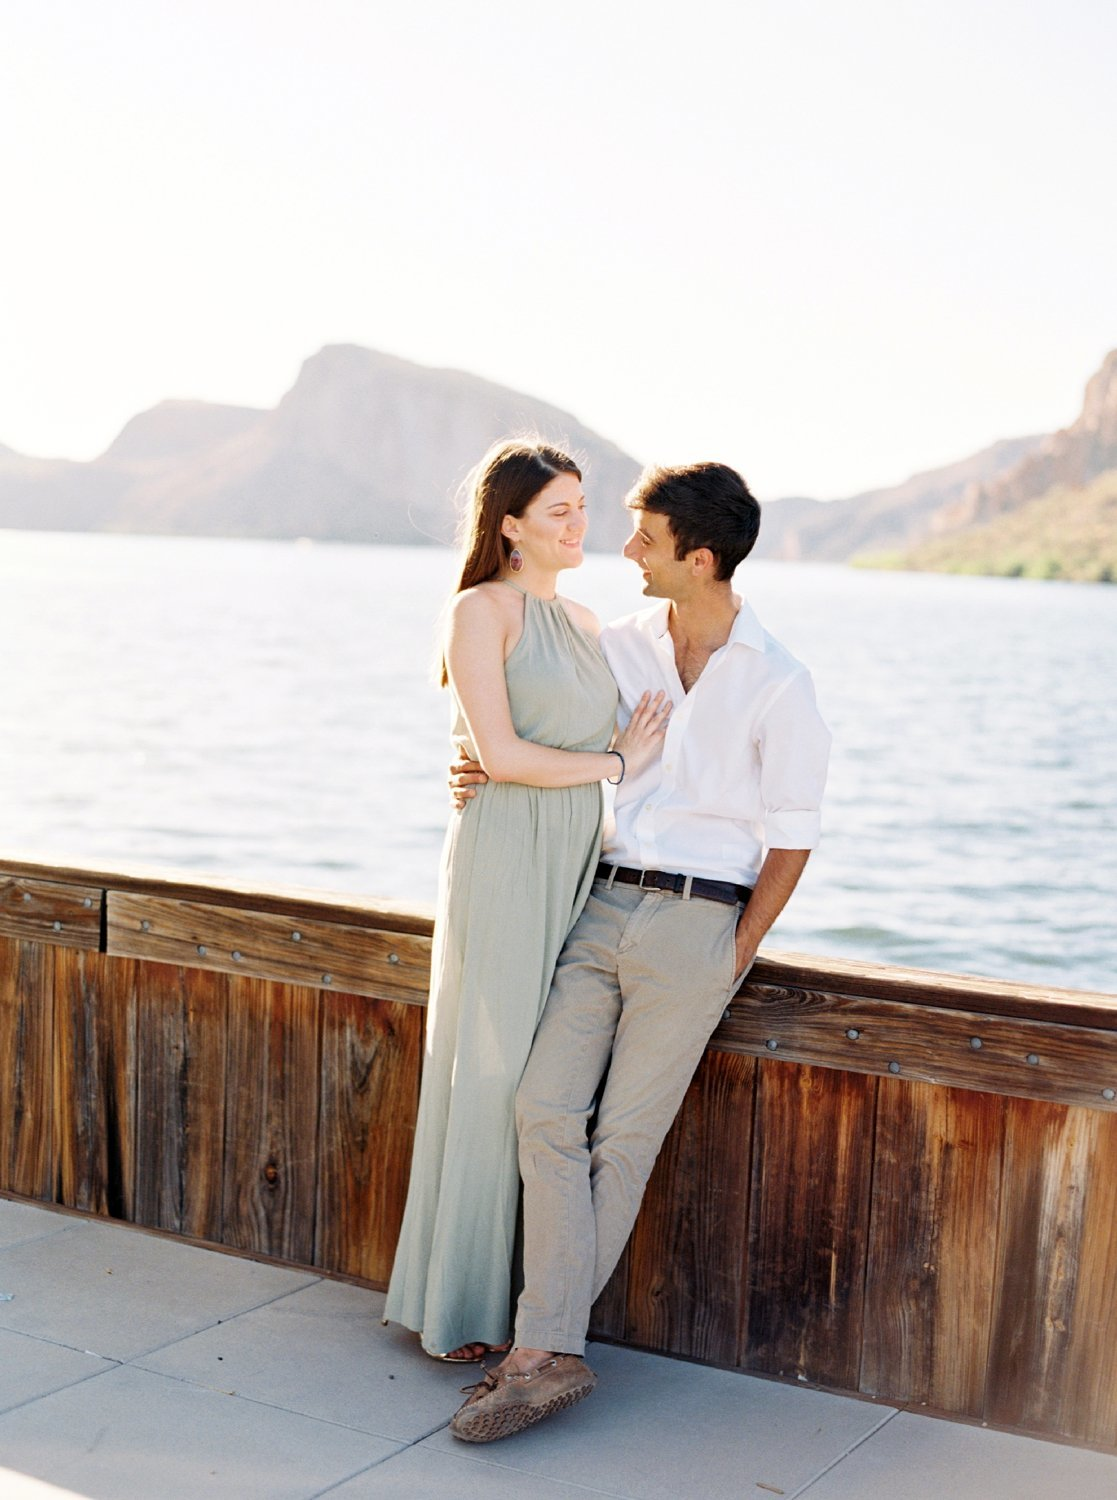 lake-arizona-engagement-session-wedding-photographer-Rachael-Koscica_0548